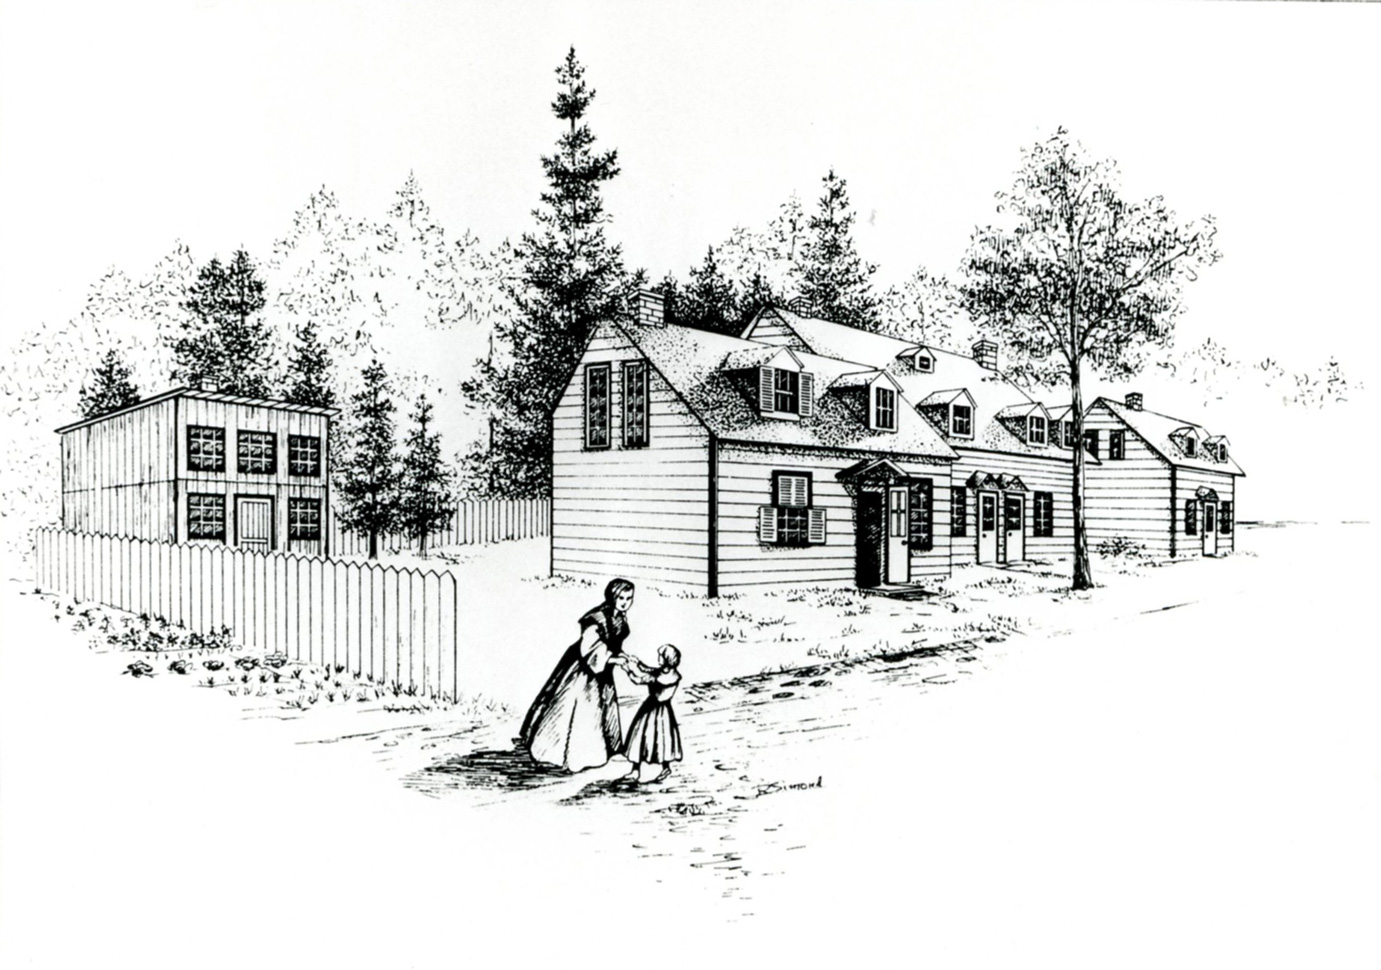 Nun in habit clasping arms with female child in a dress, three wooden buildings with gabled windows and trees in background.